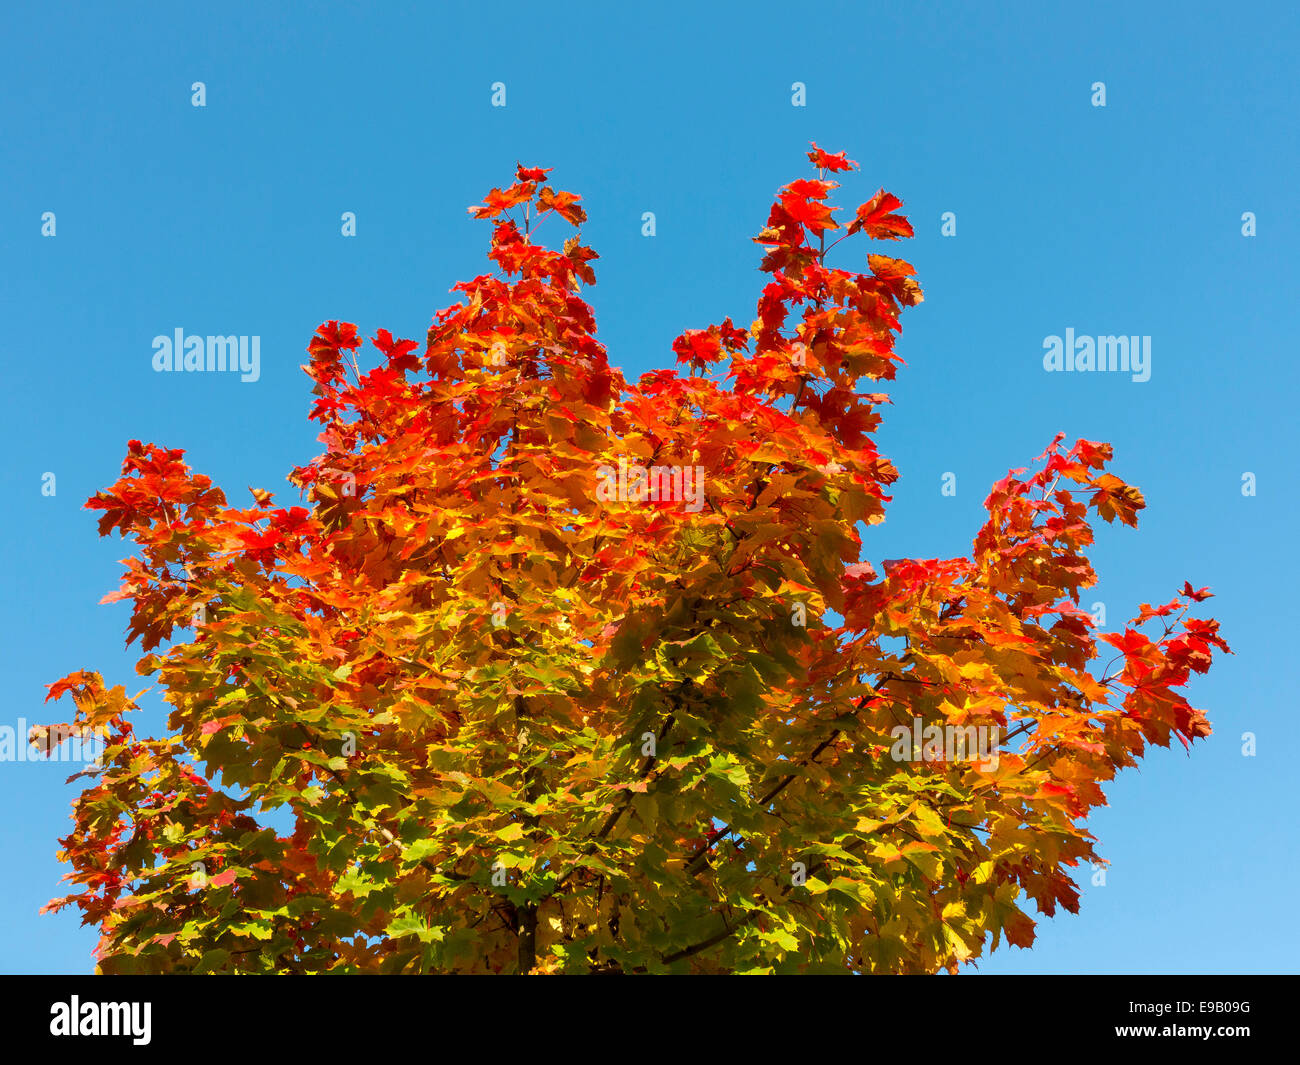 Maple (Acer sp.) with autumn colors - Stock Image